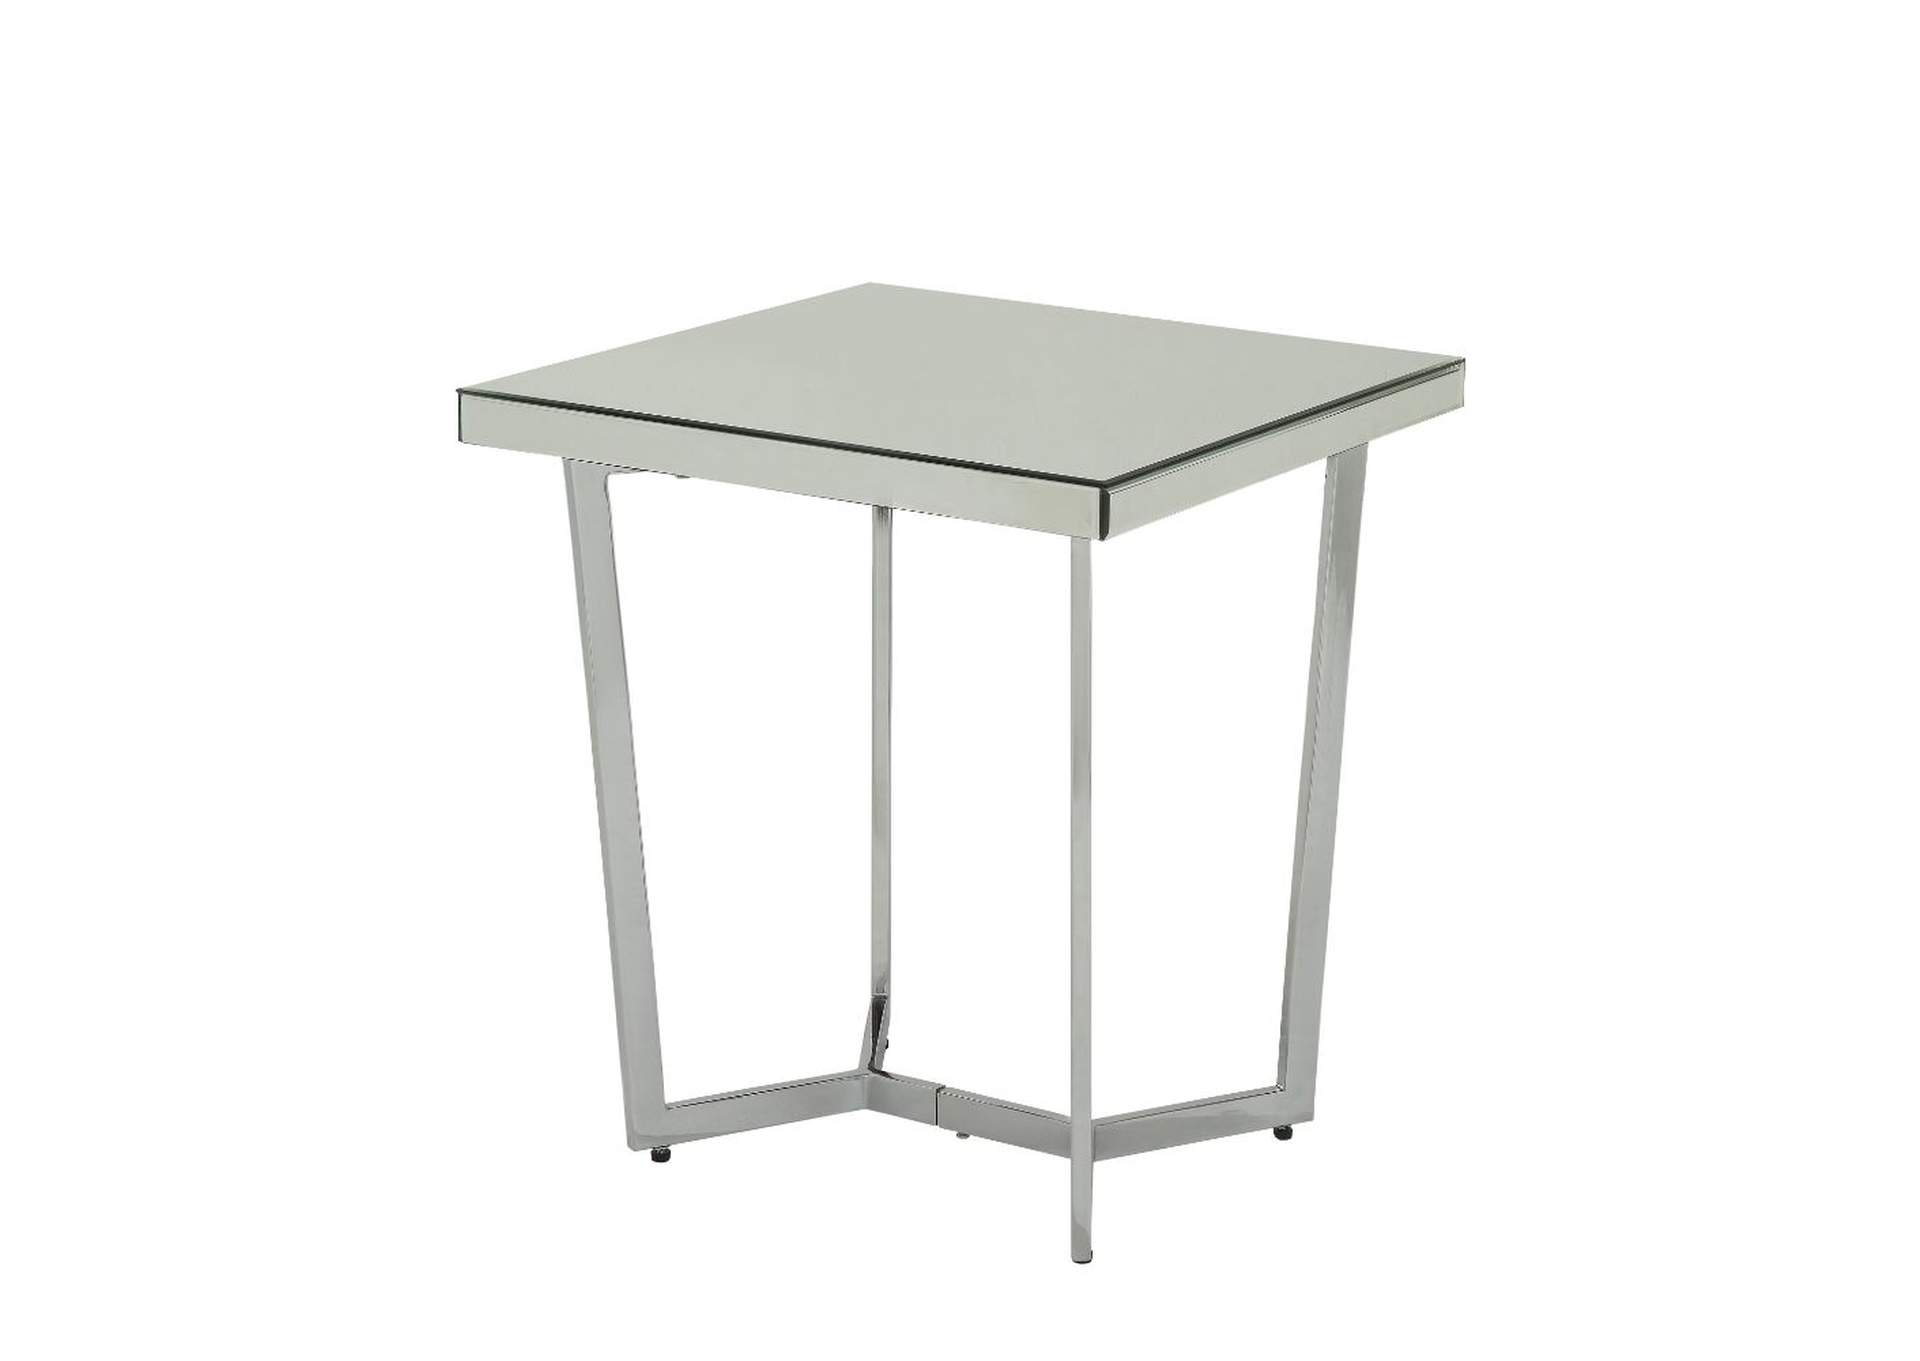 Hastin Mirrored/Chrome End Table,Acme